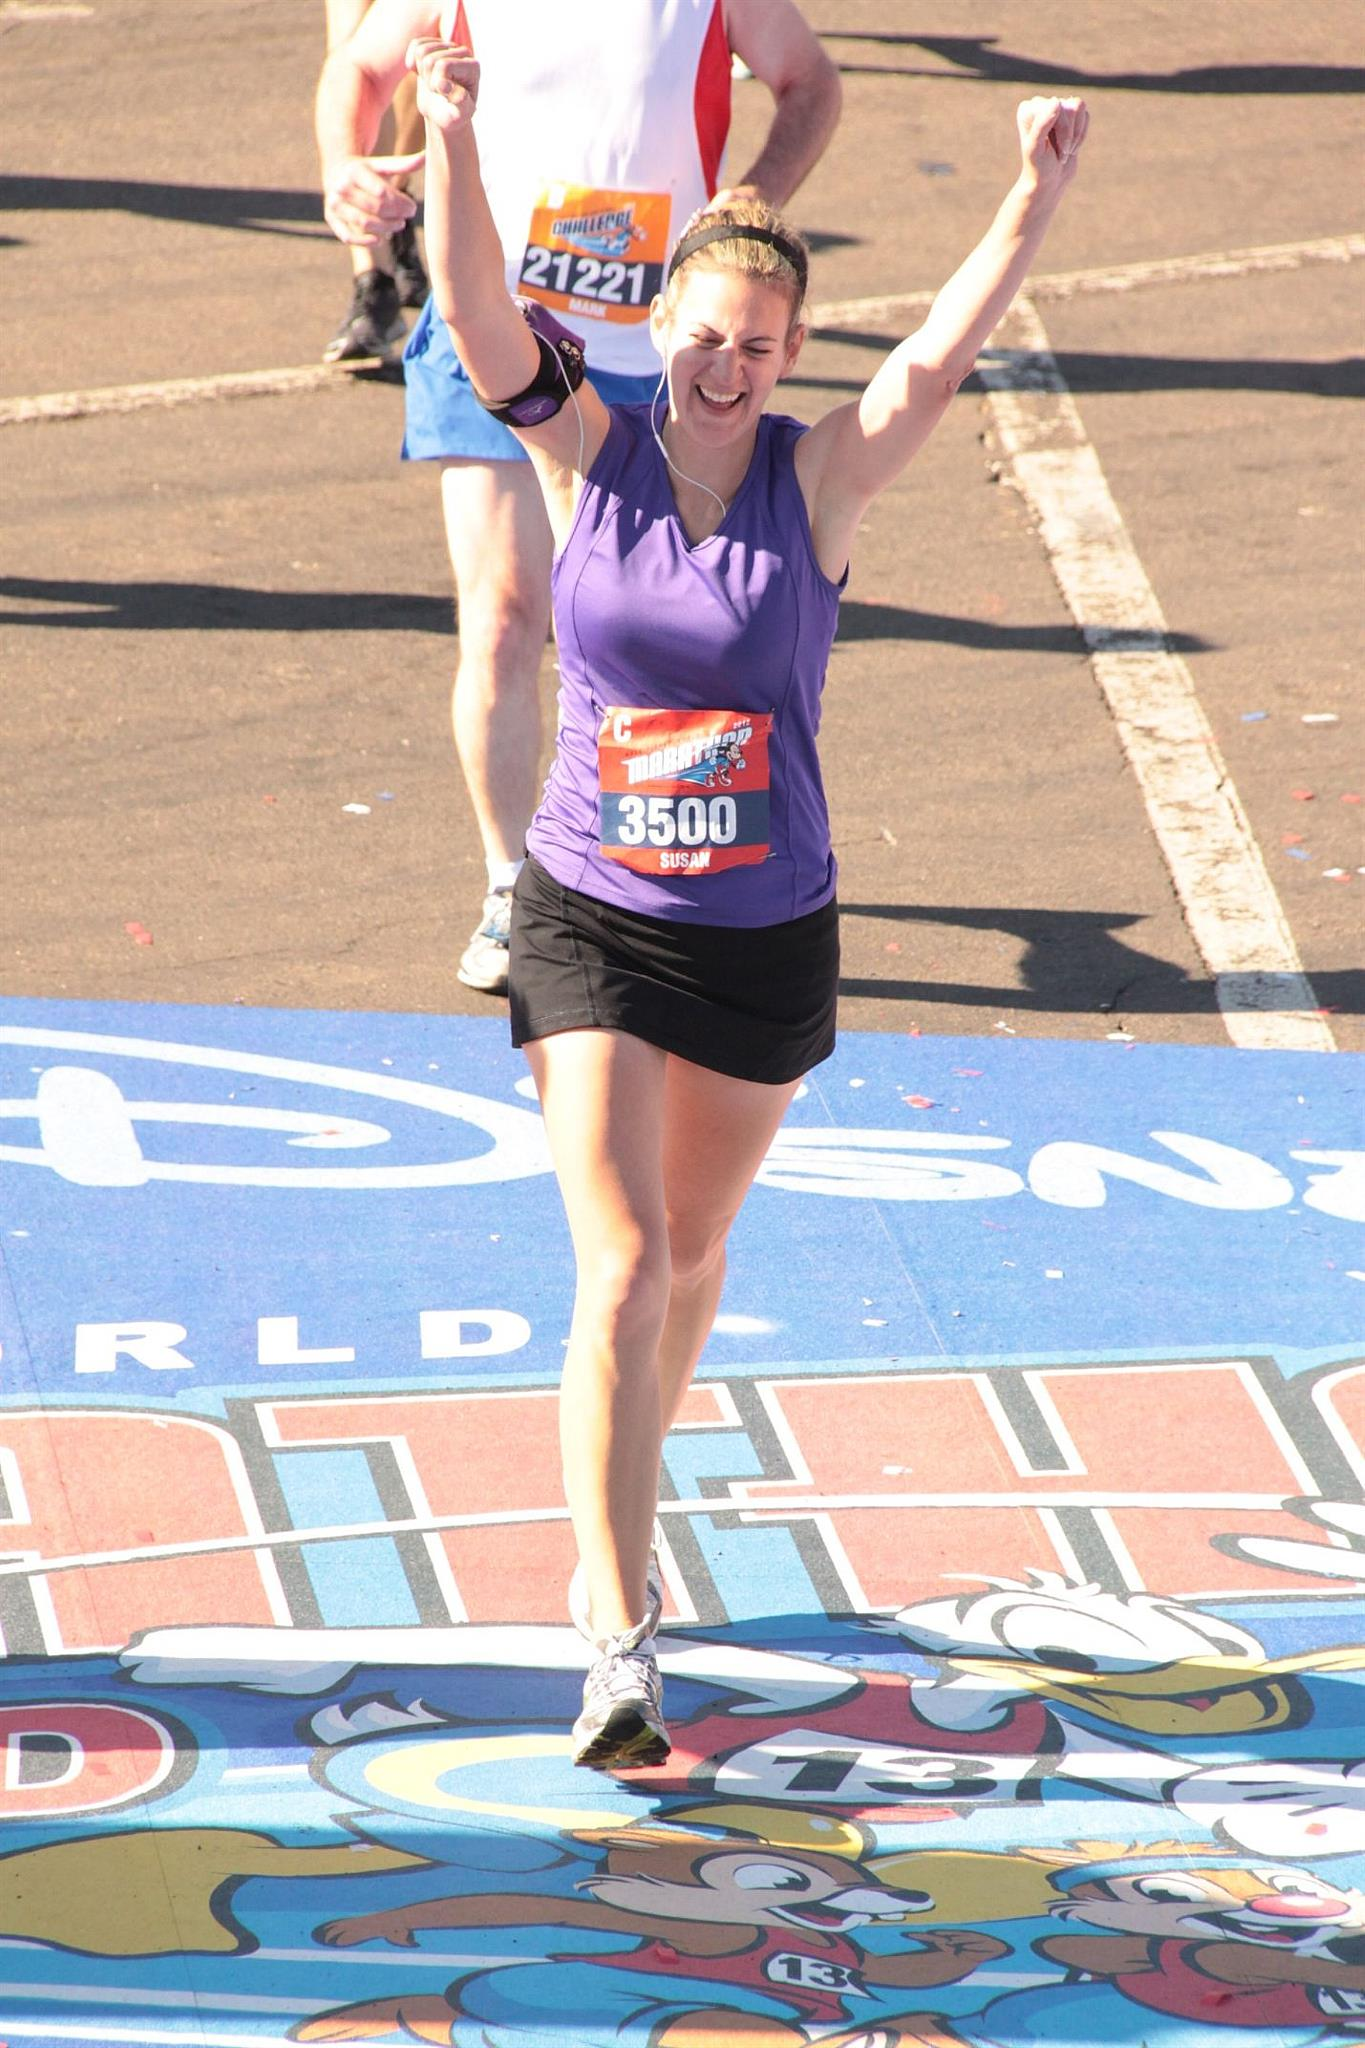 Susan rocked the finish line of the Walt Disney World Marathon. SUCH a great pic...you can taste her victory.